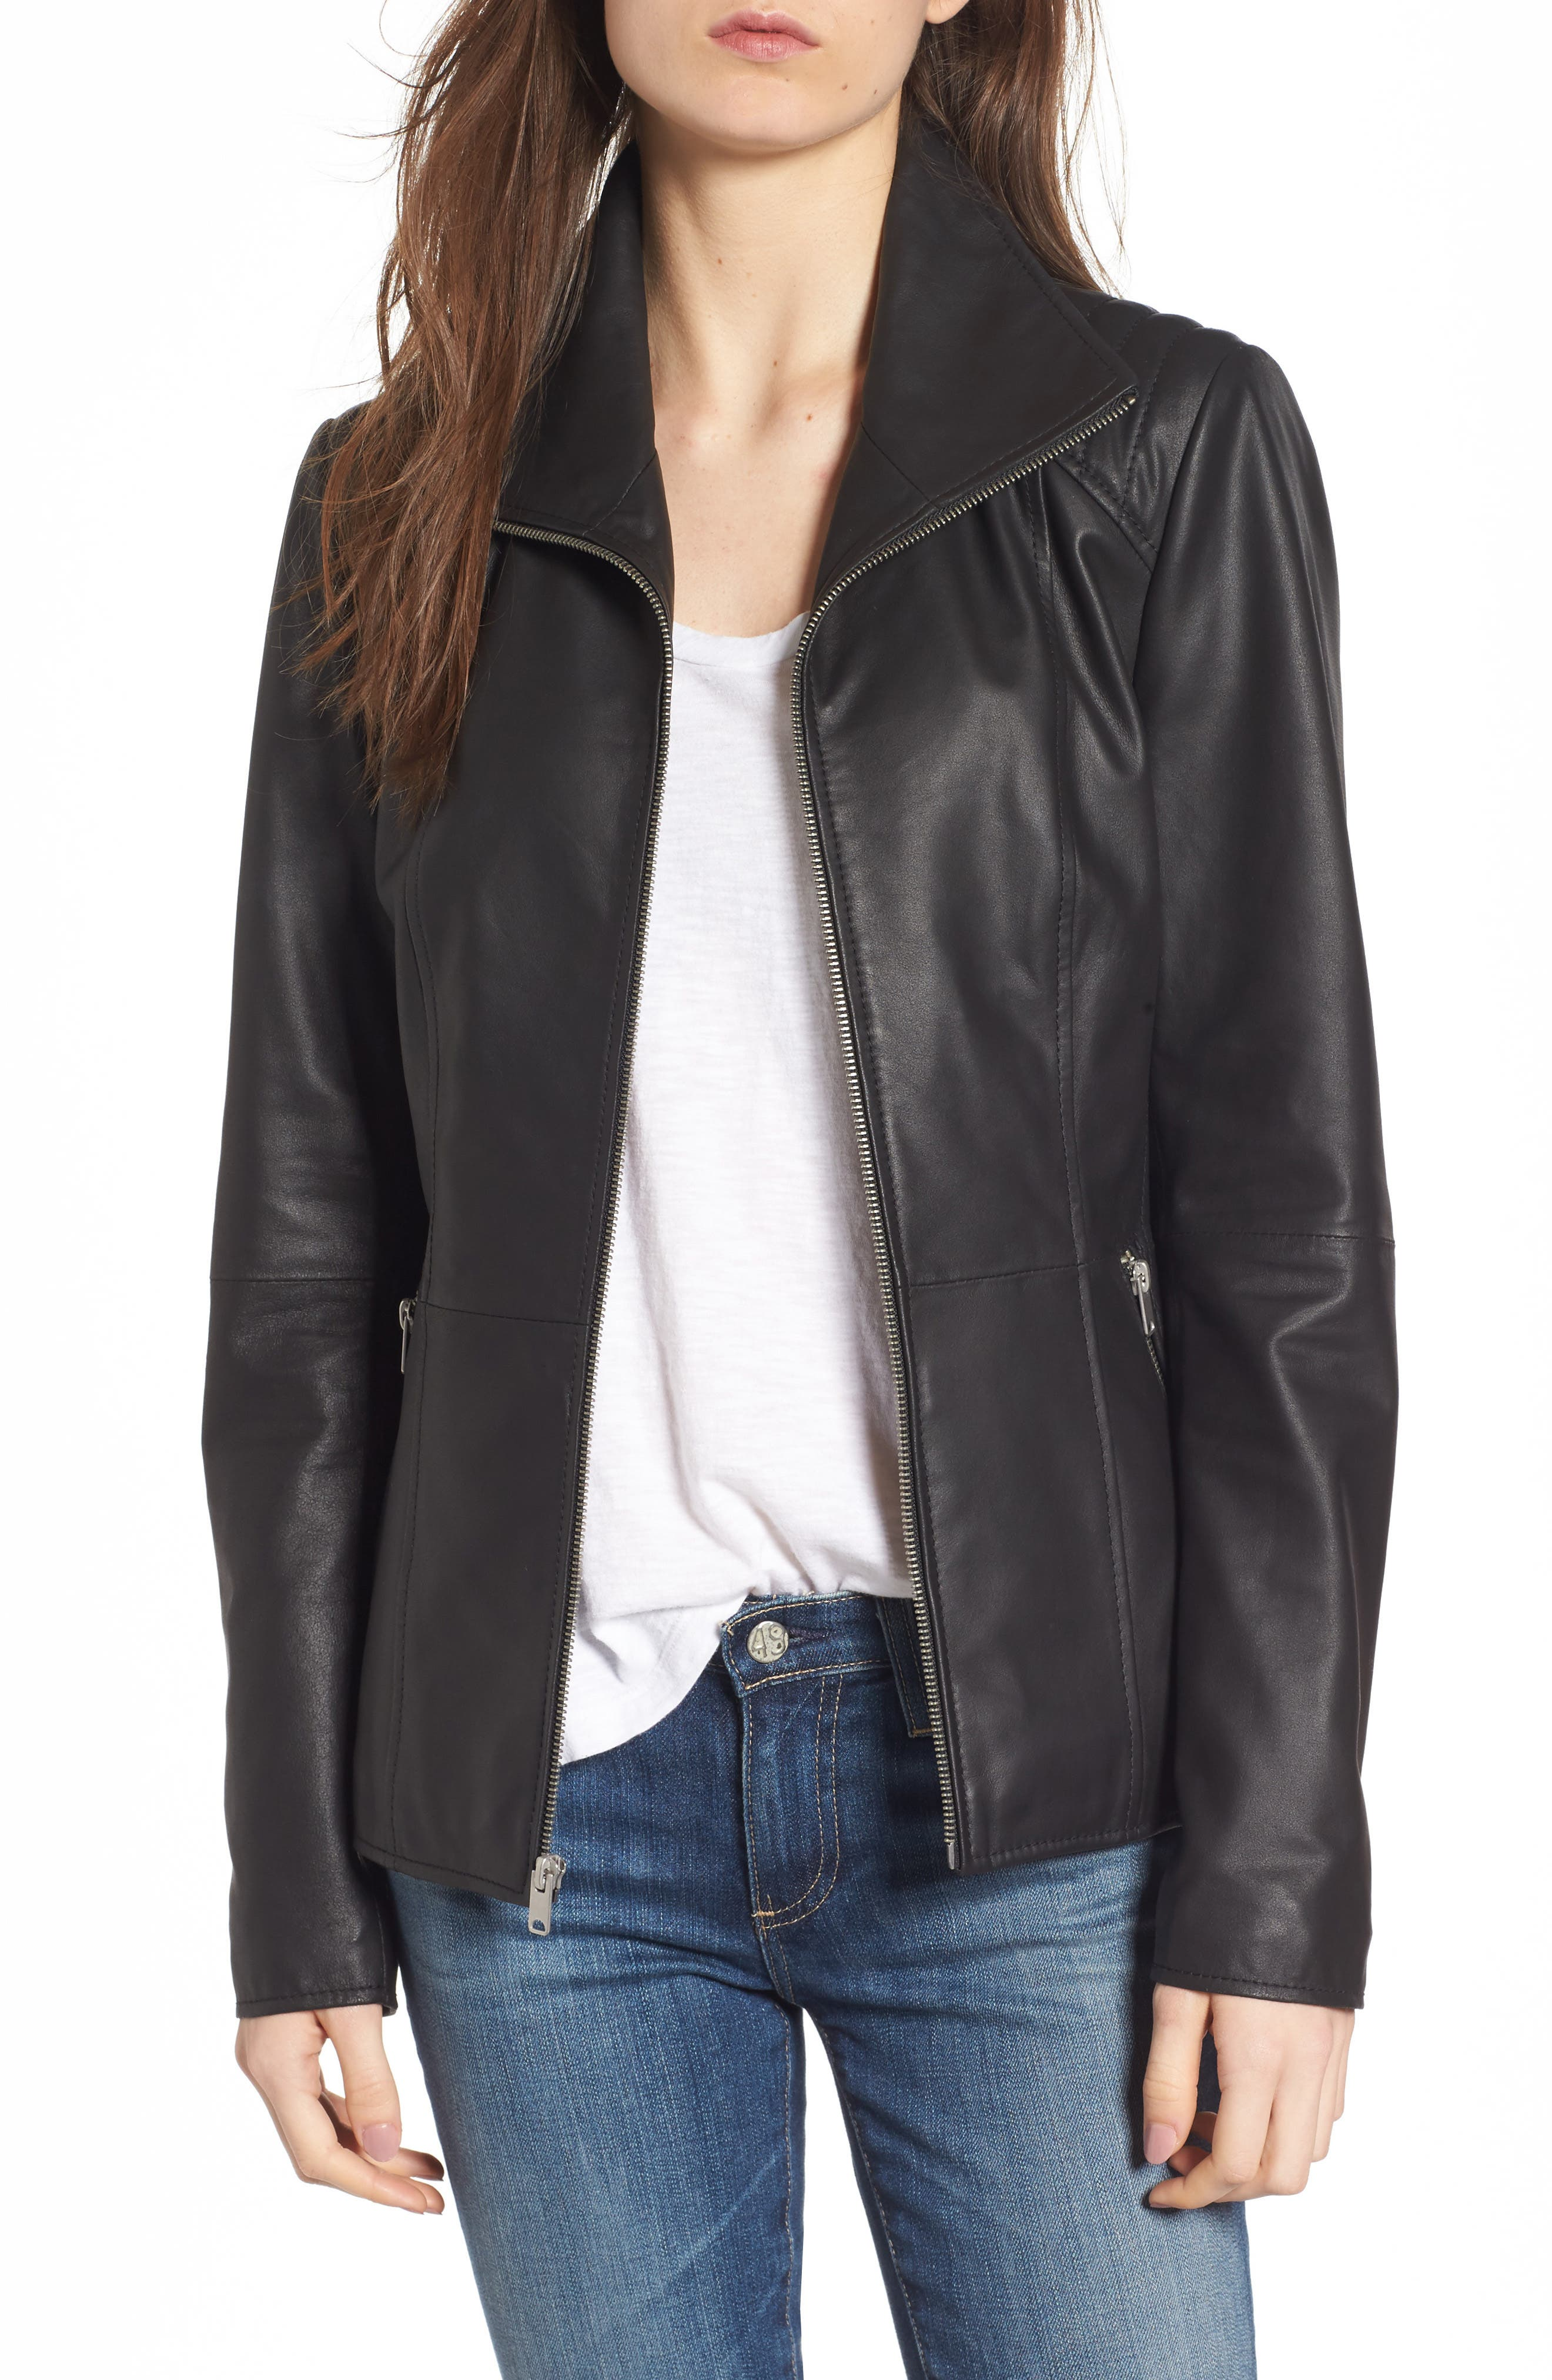 Fabian Feather Leather Jacket,                         Main,                         color, Black